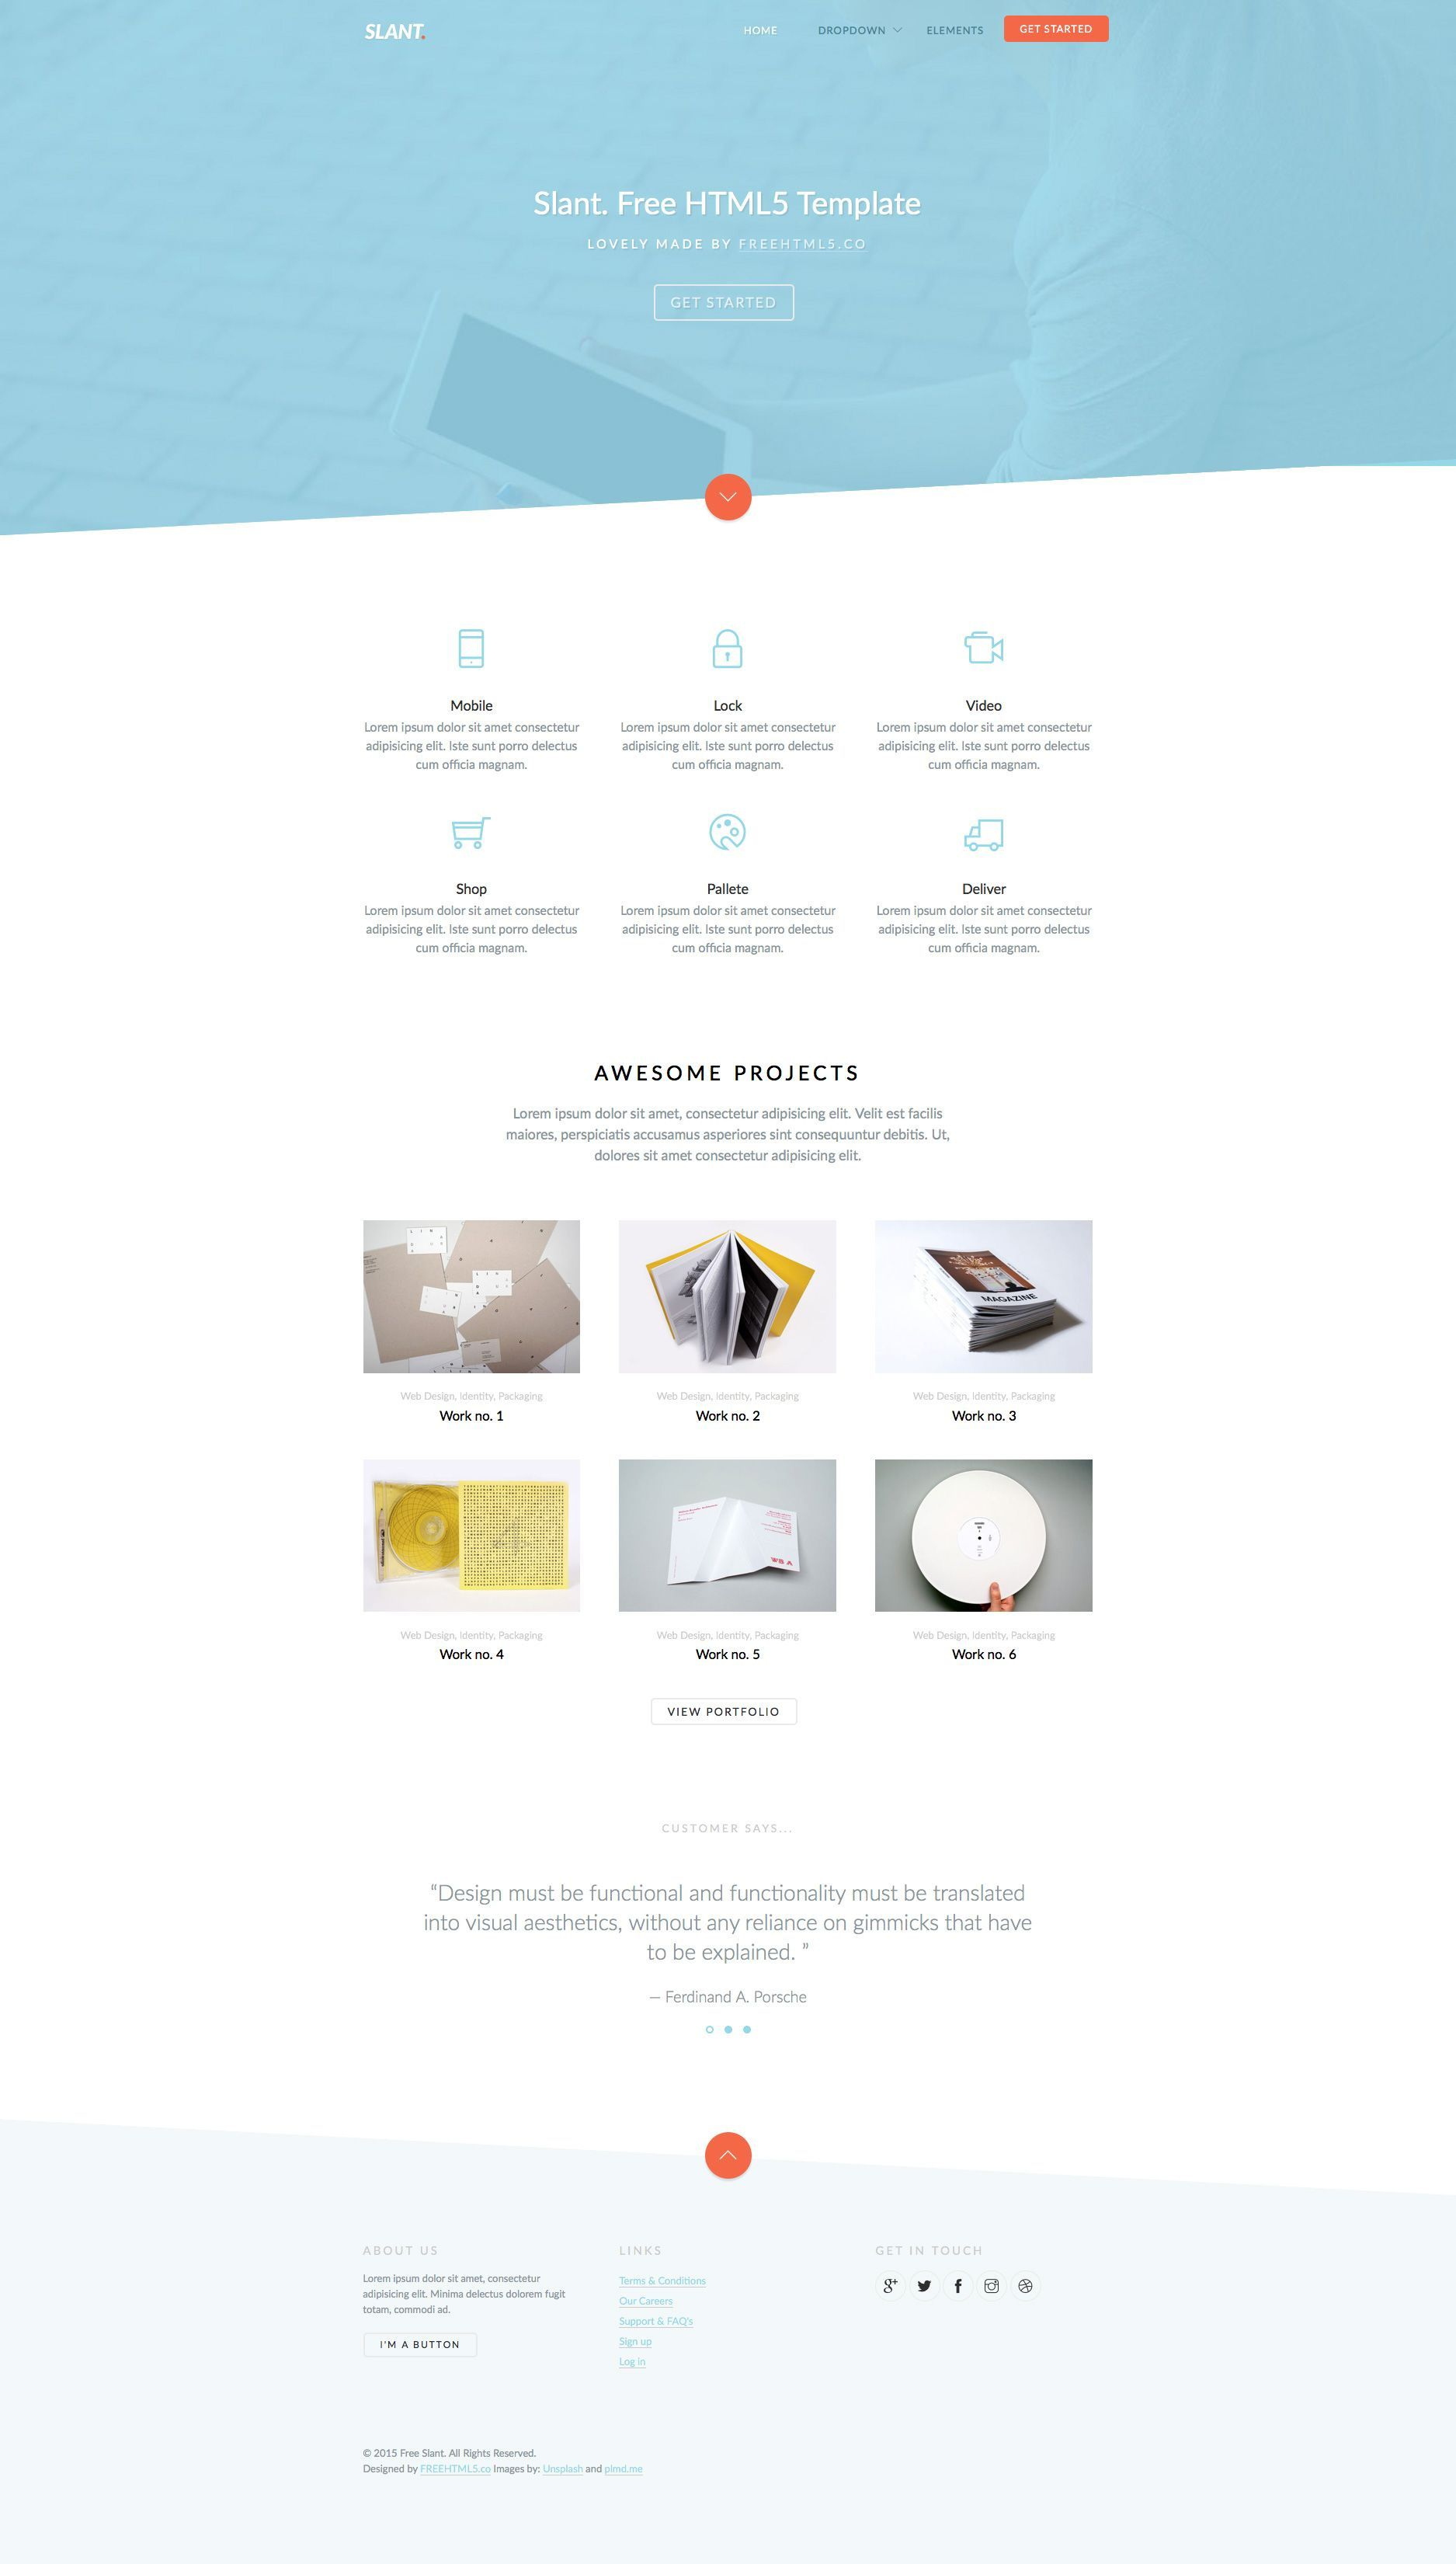 003 Formidable Free Responsive Landing Page Template Picture  Templates Pardot Html5Full